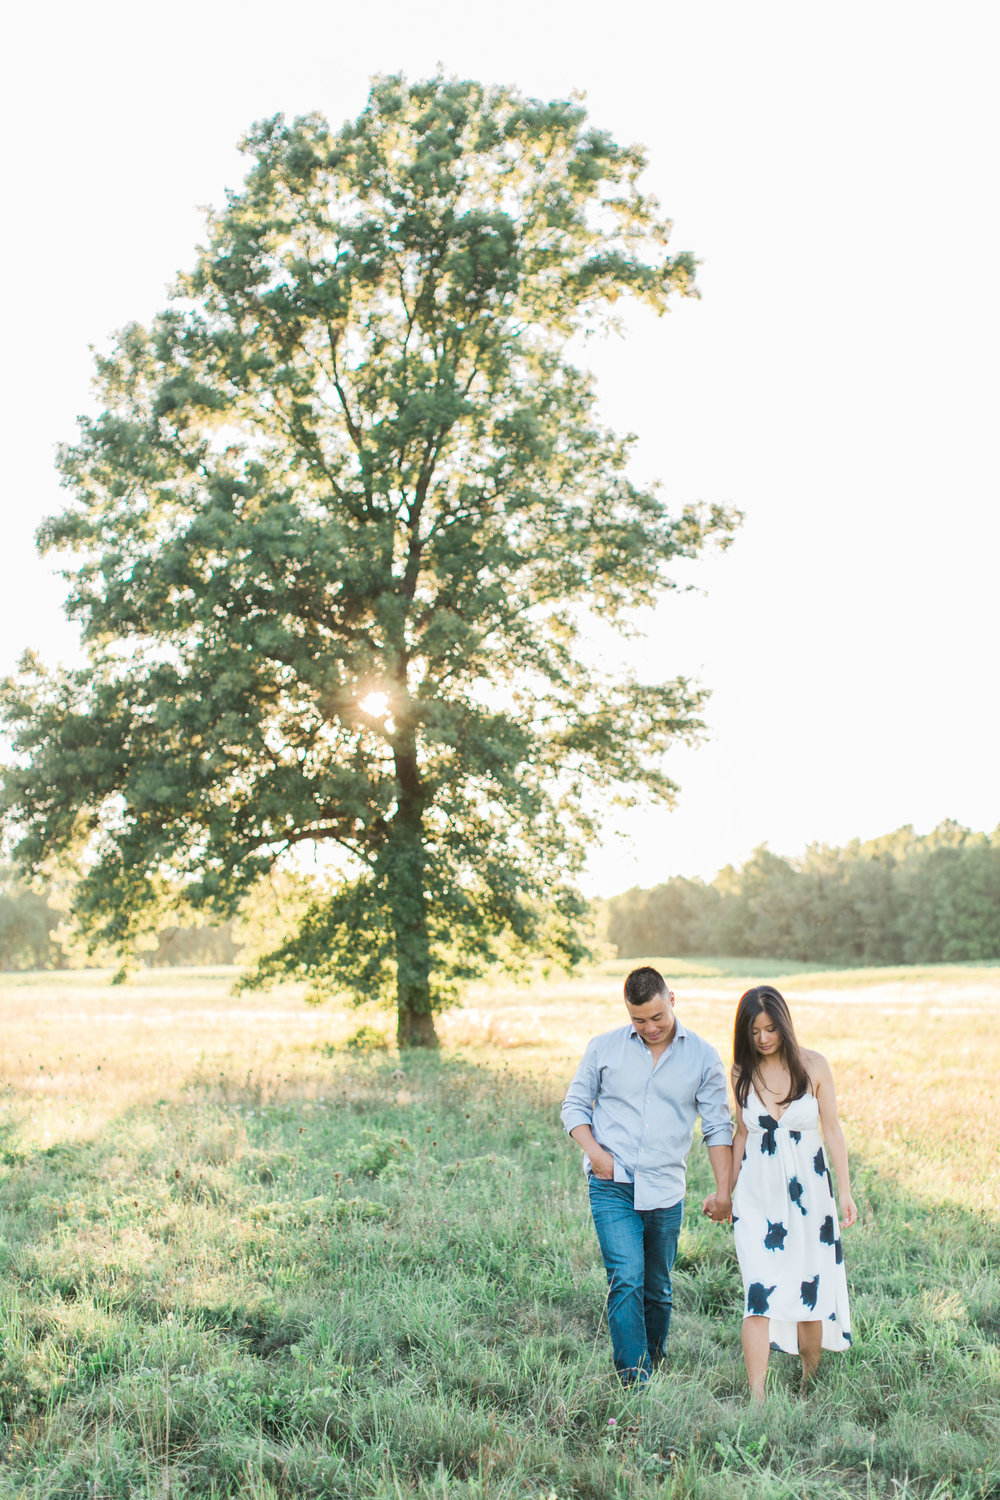 Wendy + Alan - Engagement Session-59.jpg